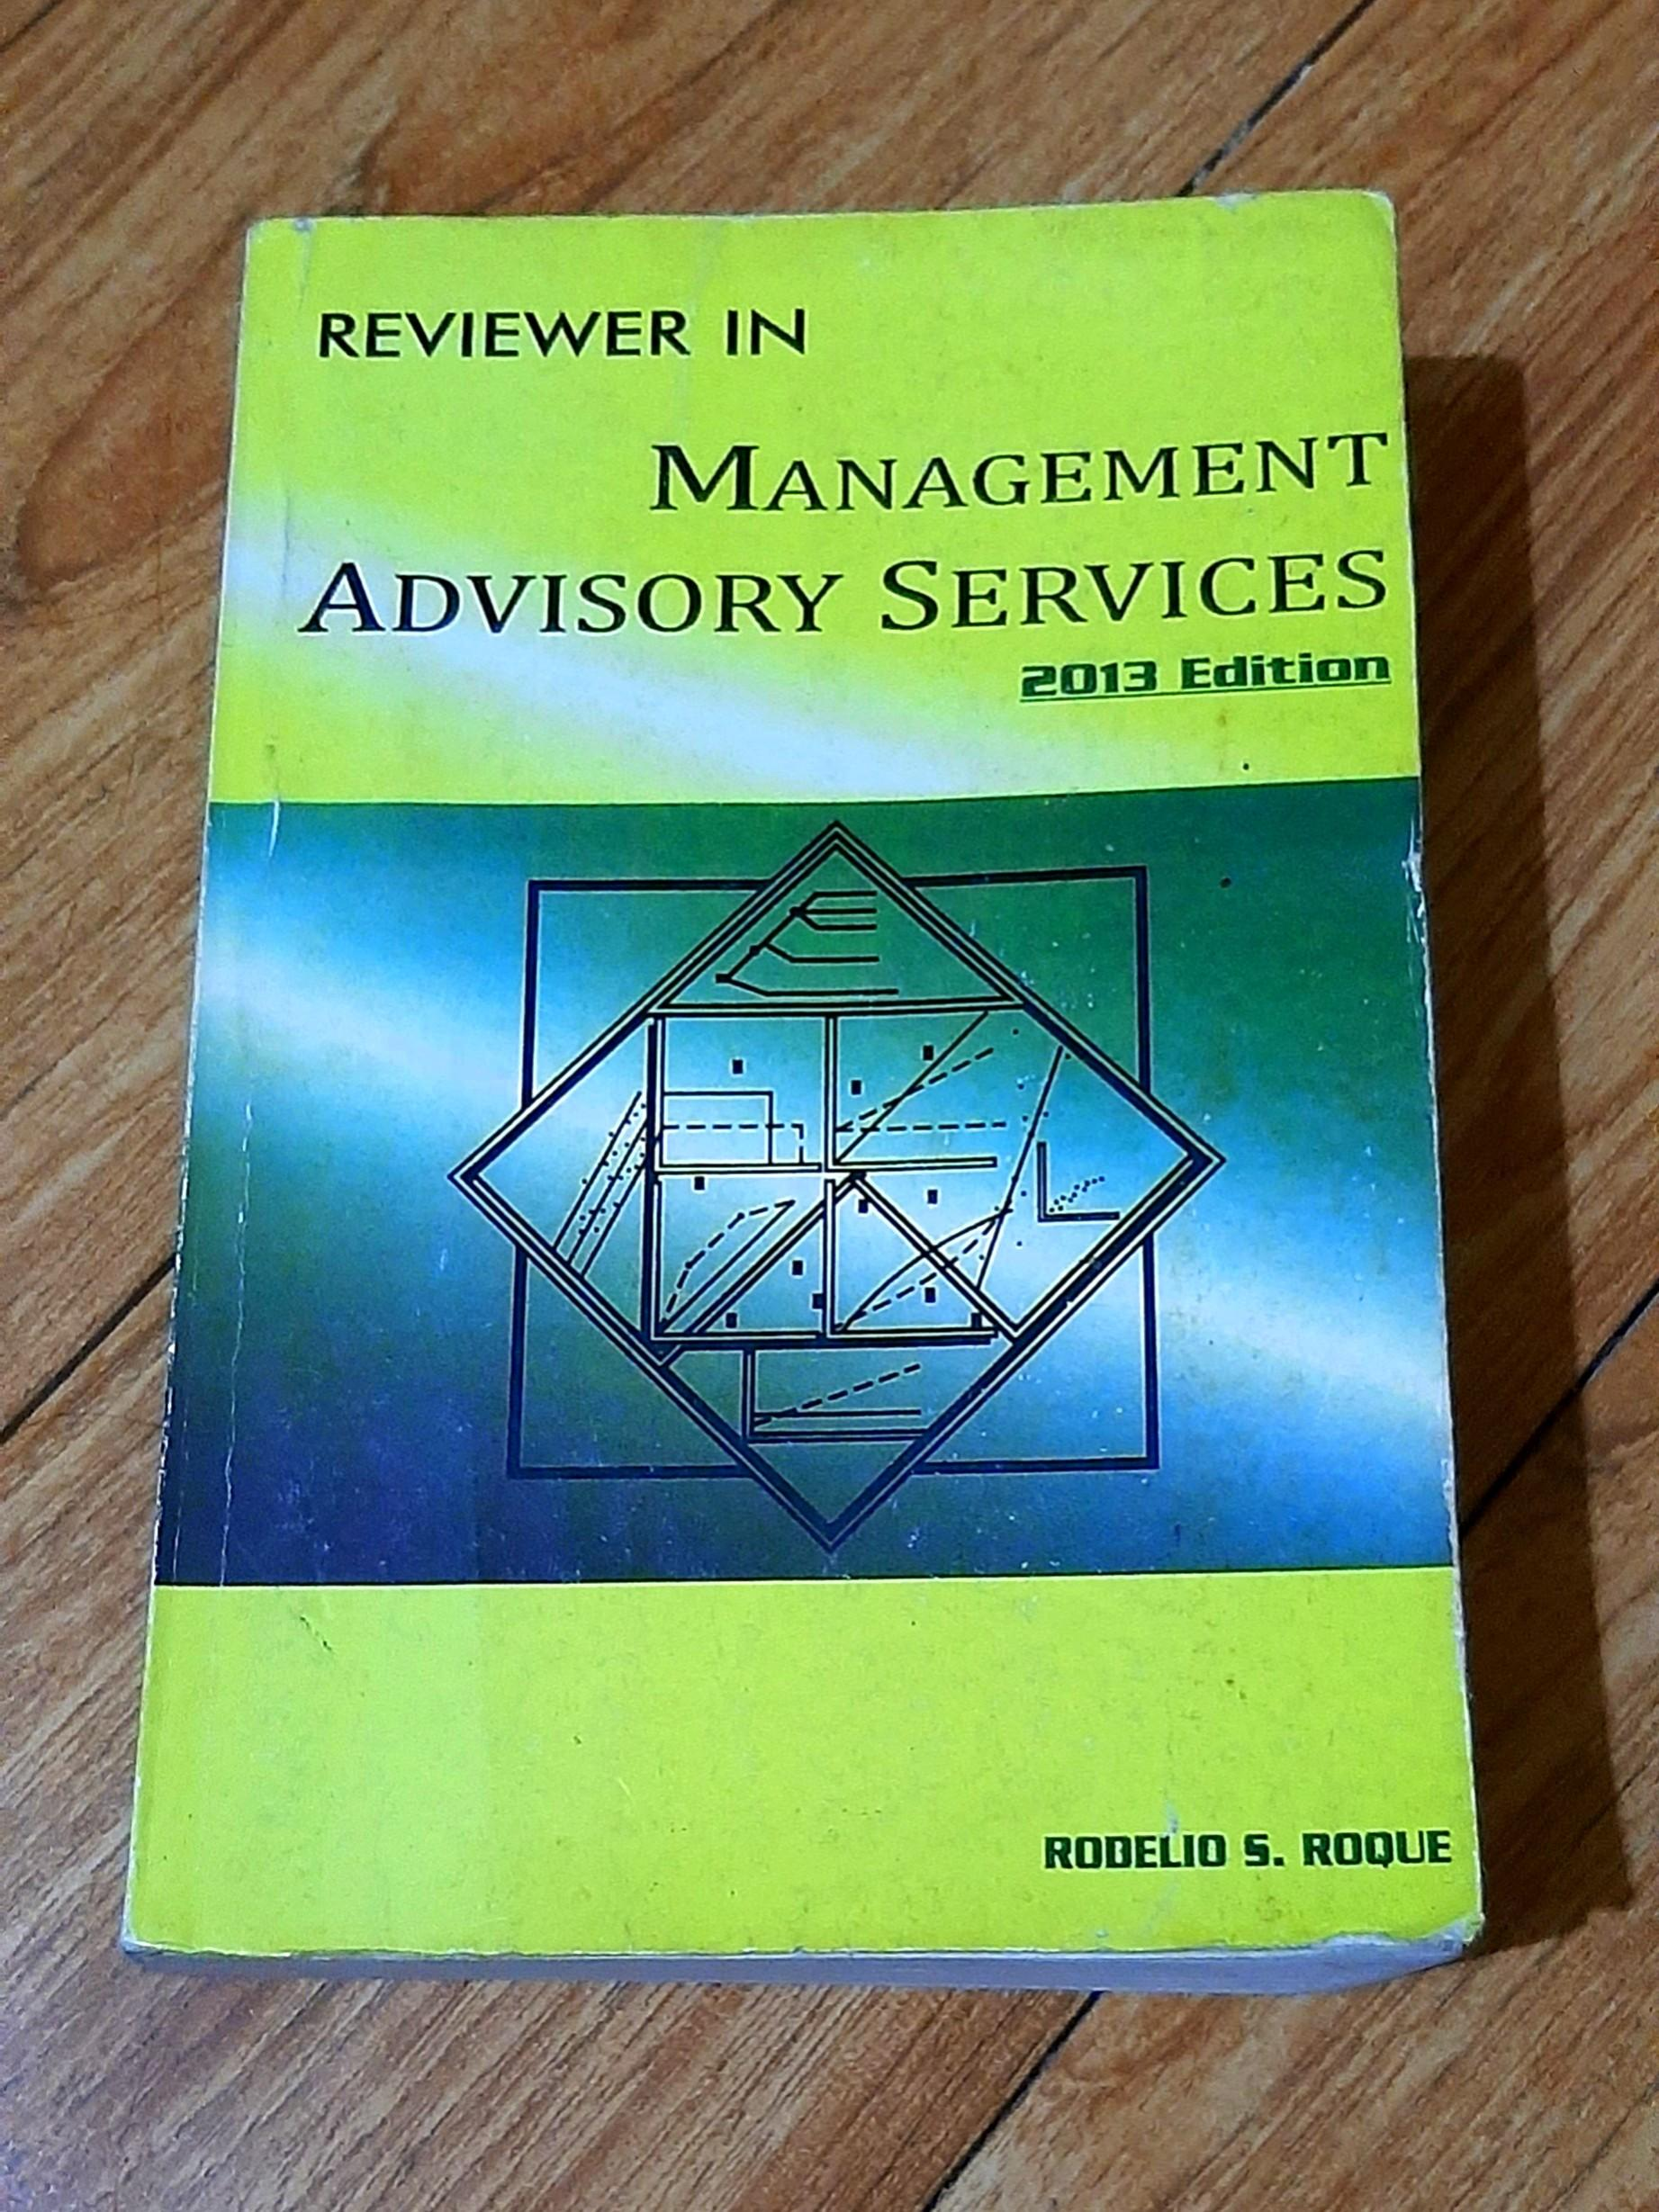 [CPA Reviewer] Reviewer in Management Advisory Services by Roque 2013 edition